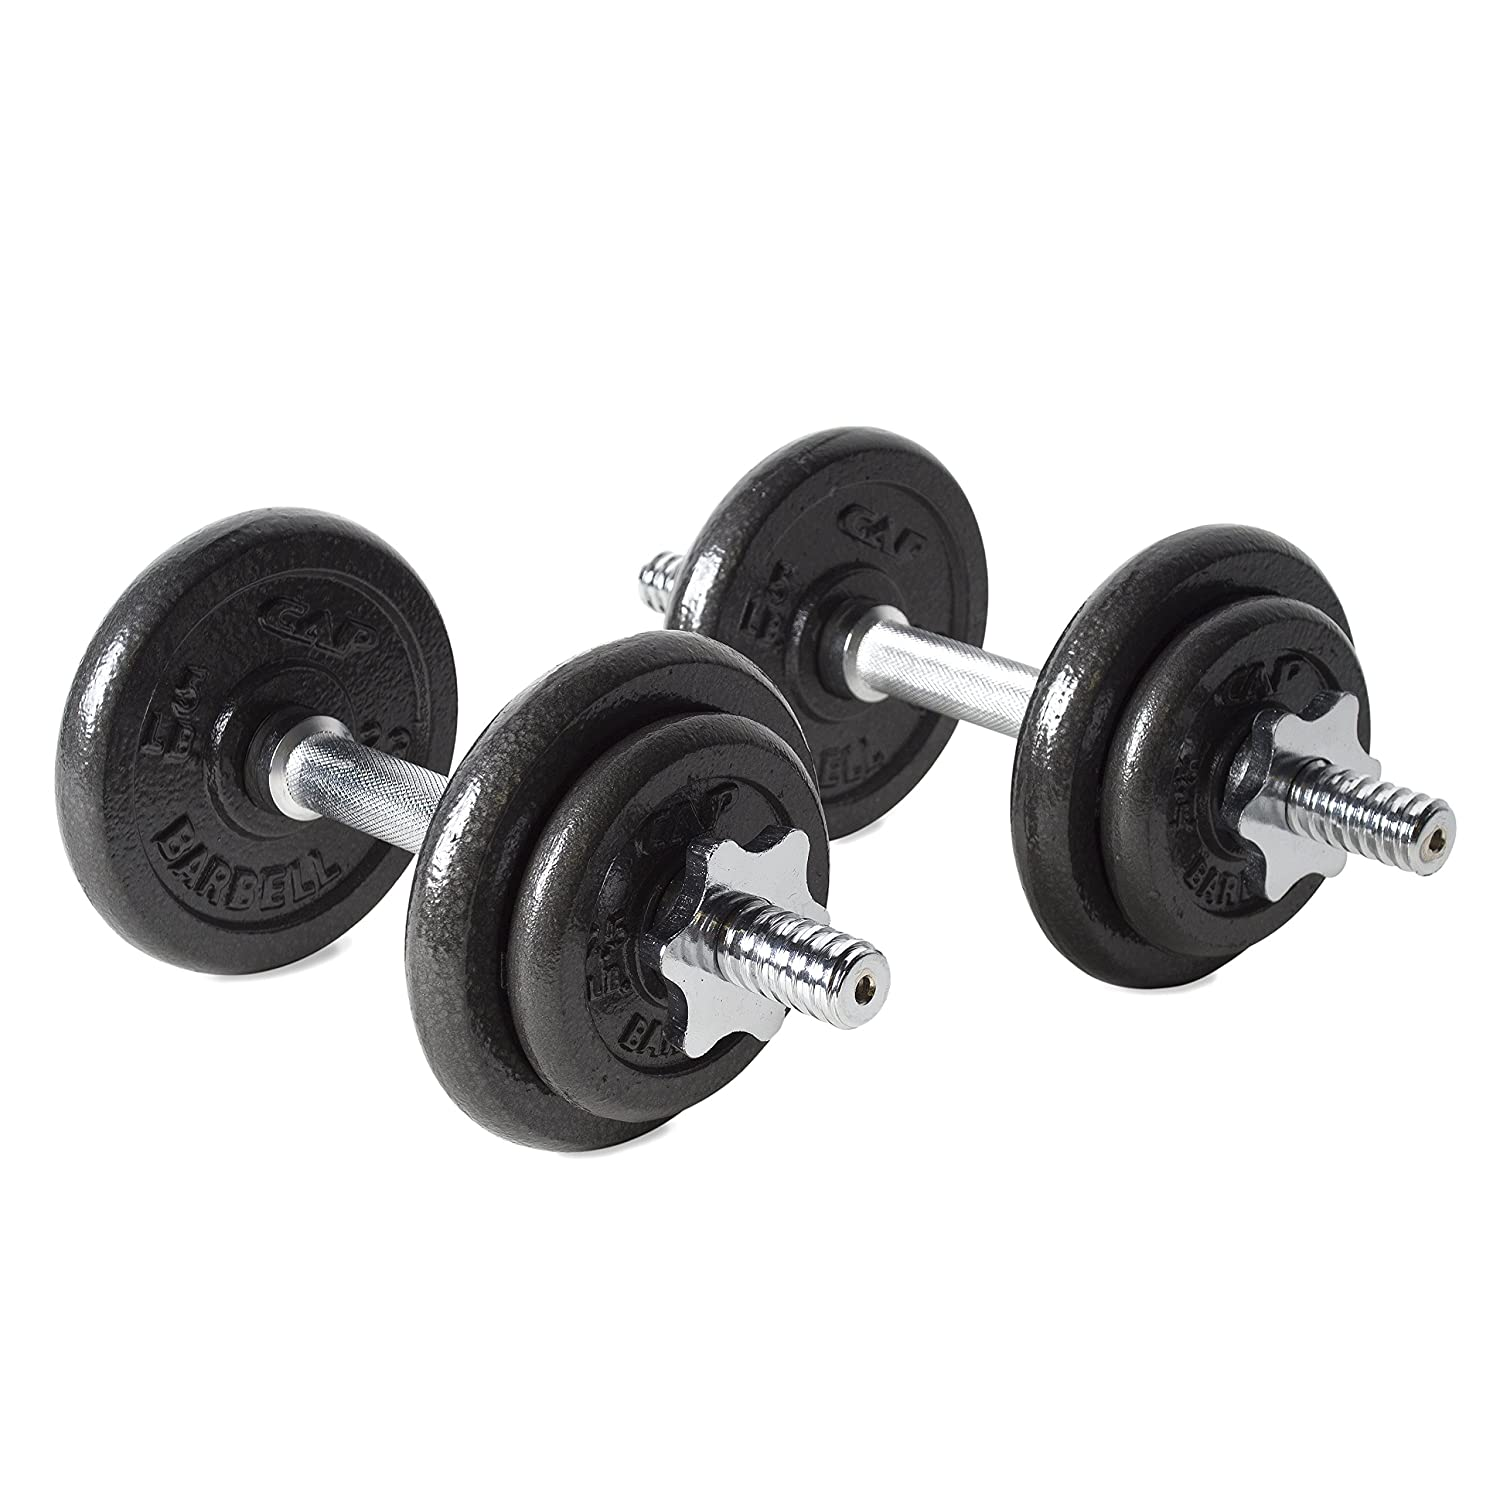 Amazon CAP Barbell 40 Pound Adjustable Dumbbell Set With Case Weights Sports Outdoors